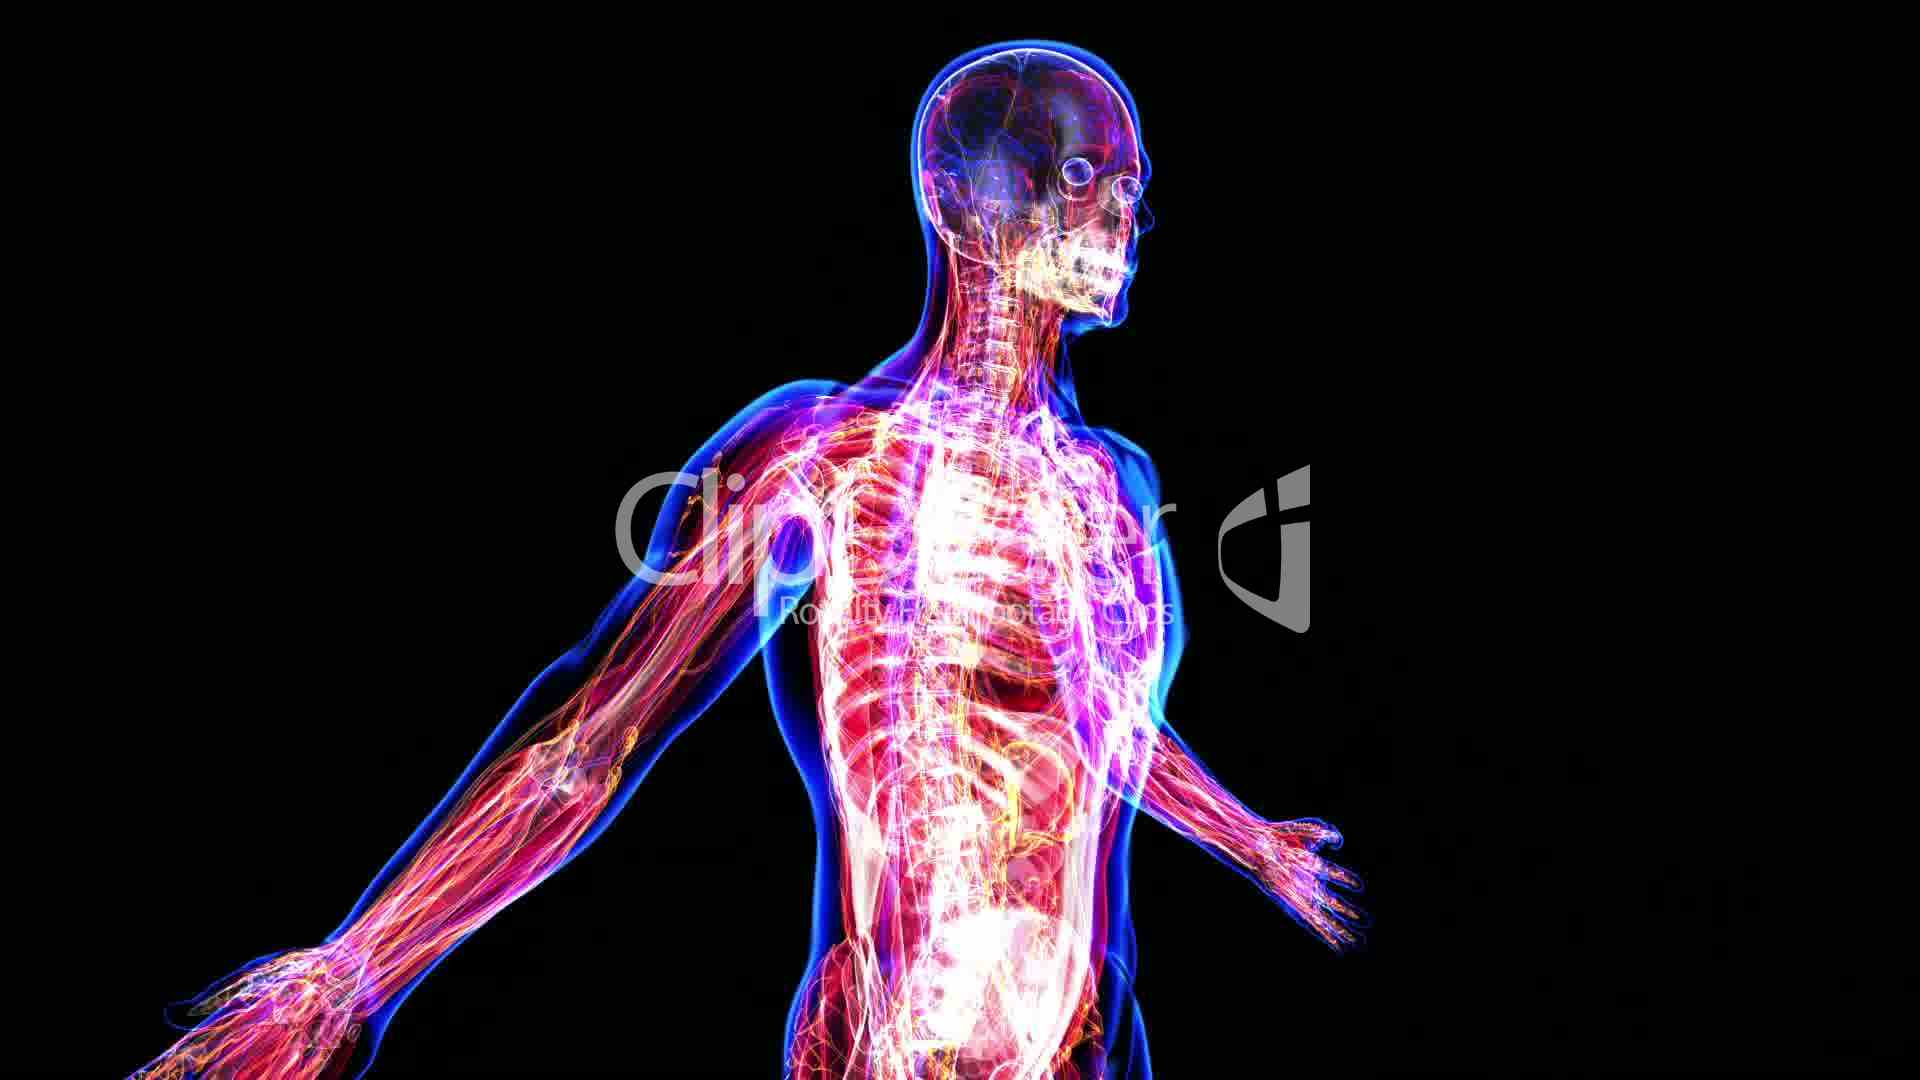 Anatomy Of The Human Body Royalty Free Video And Stock Footage